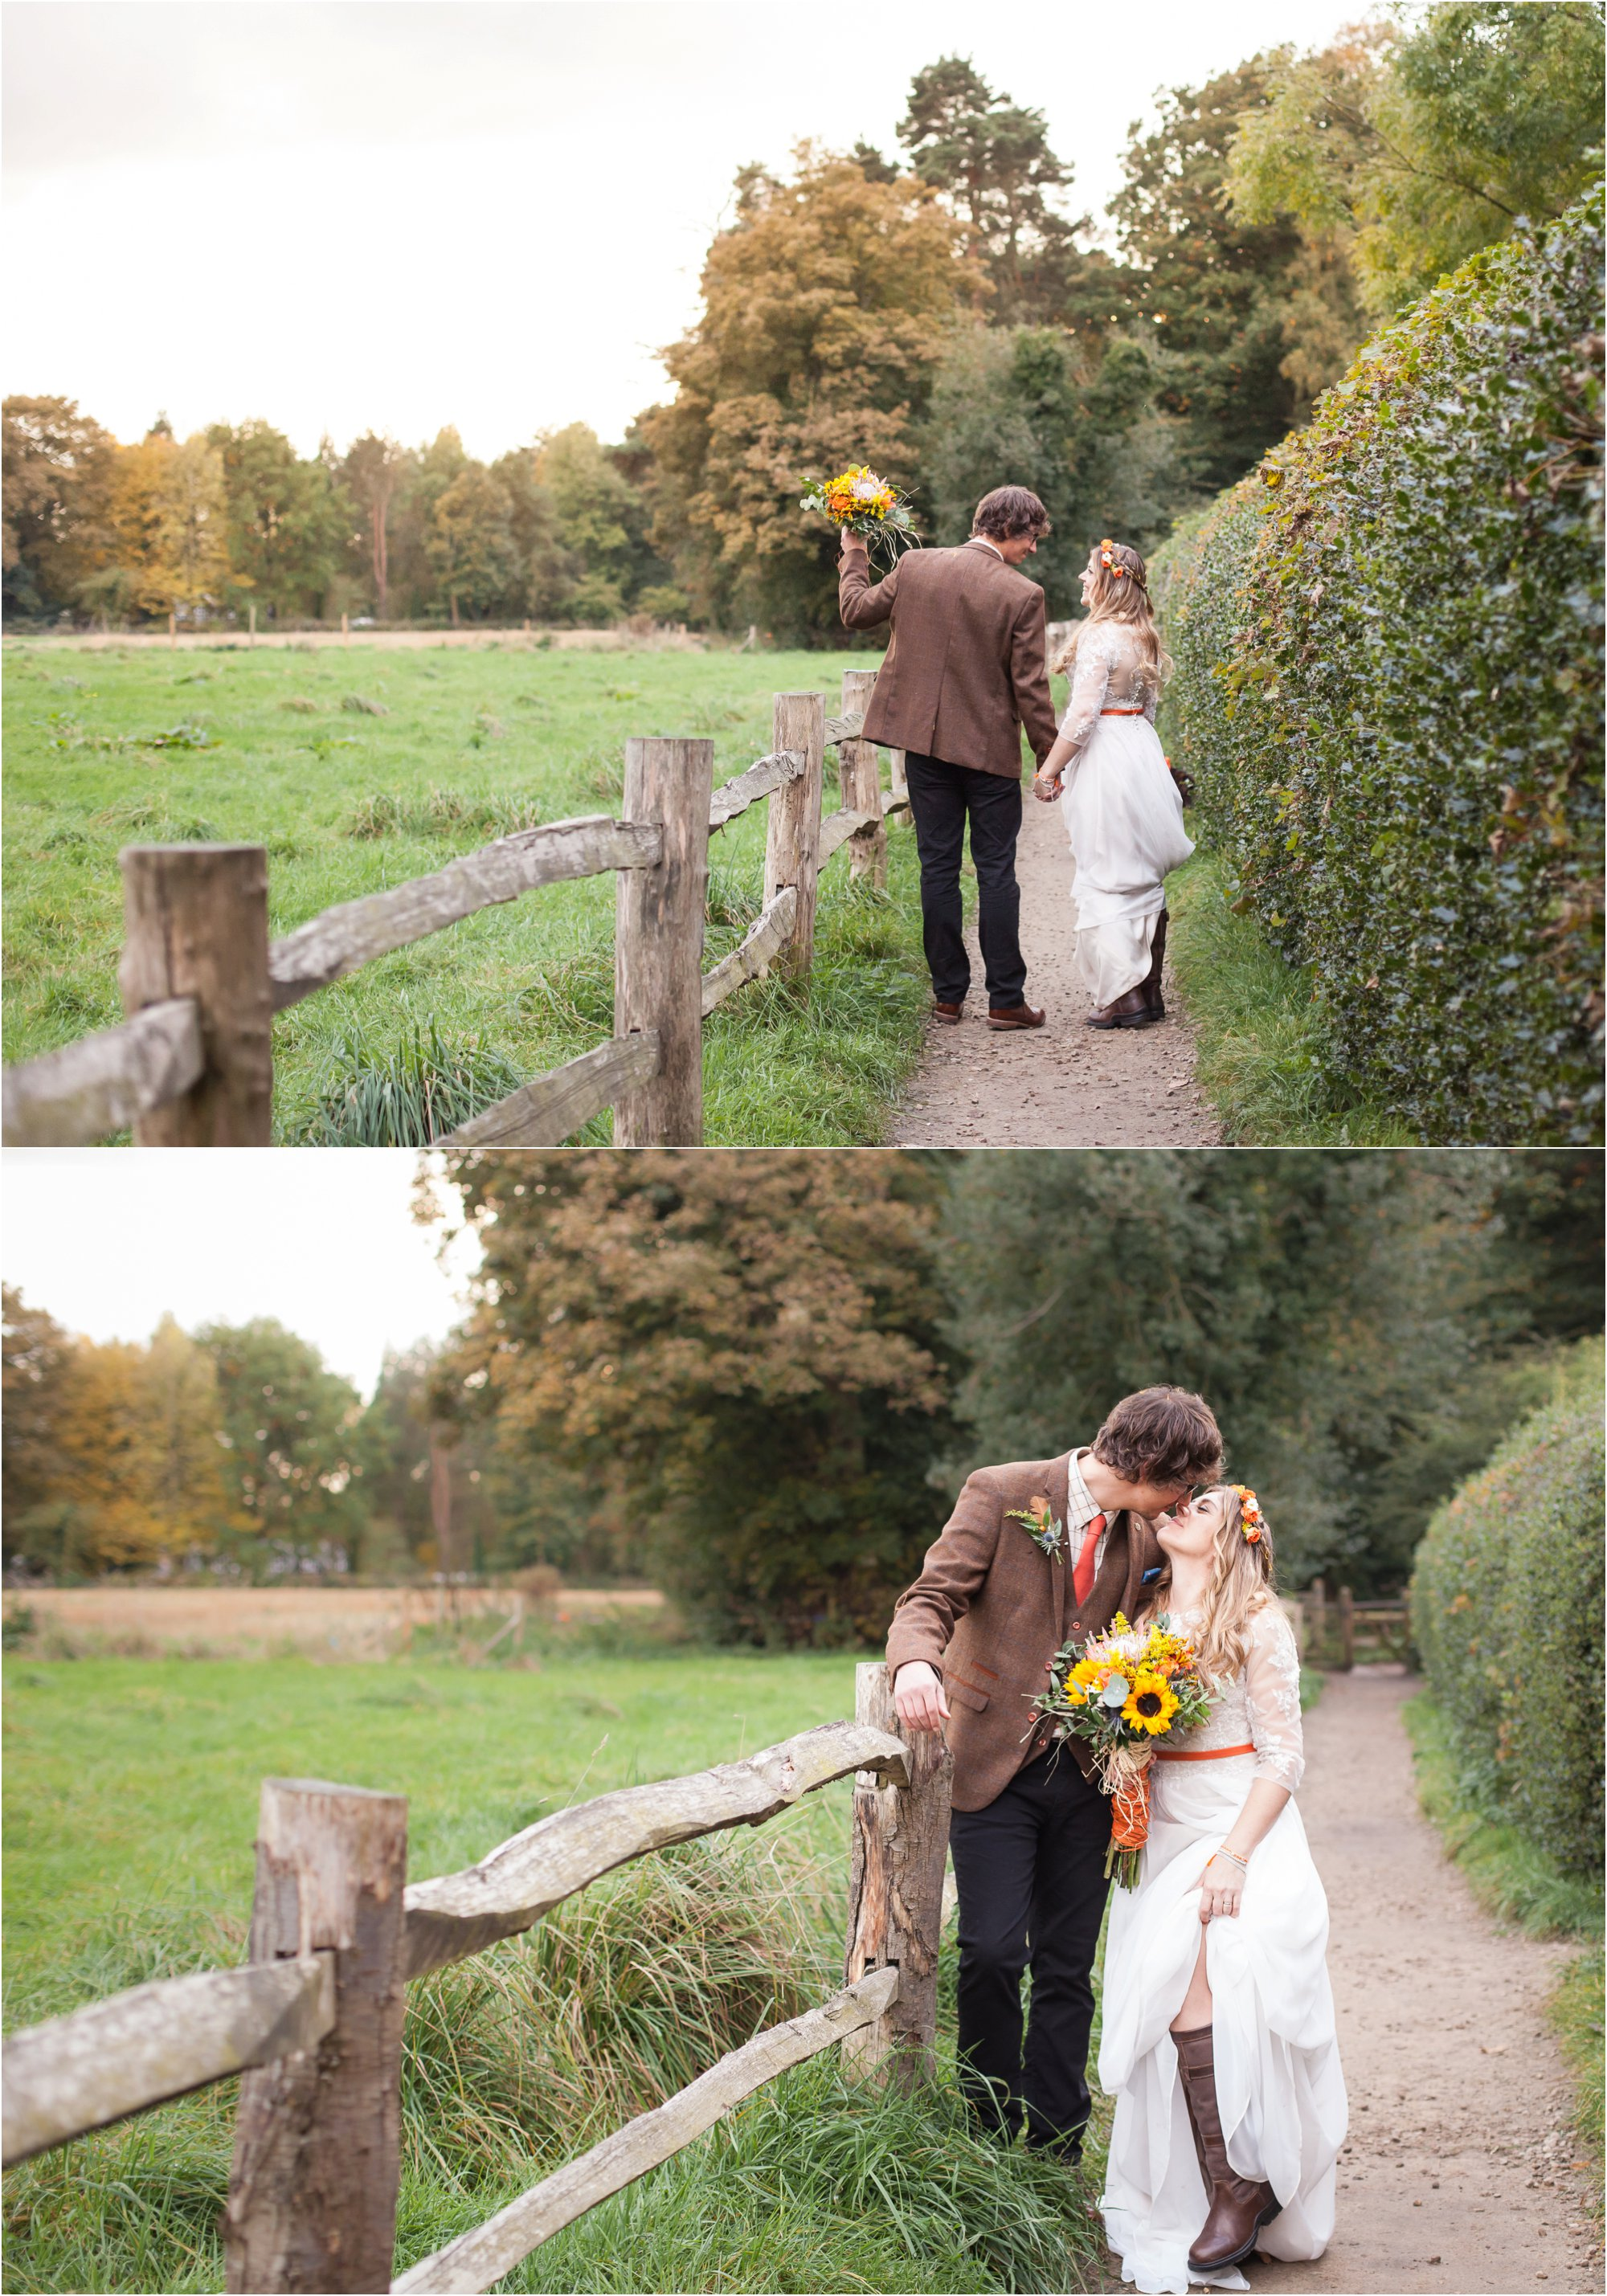 Styal_Wedding_Wilmslow_Cheshire_Autumn_Colourful_photography_0108.jpg